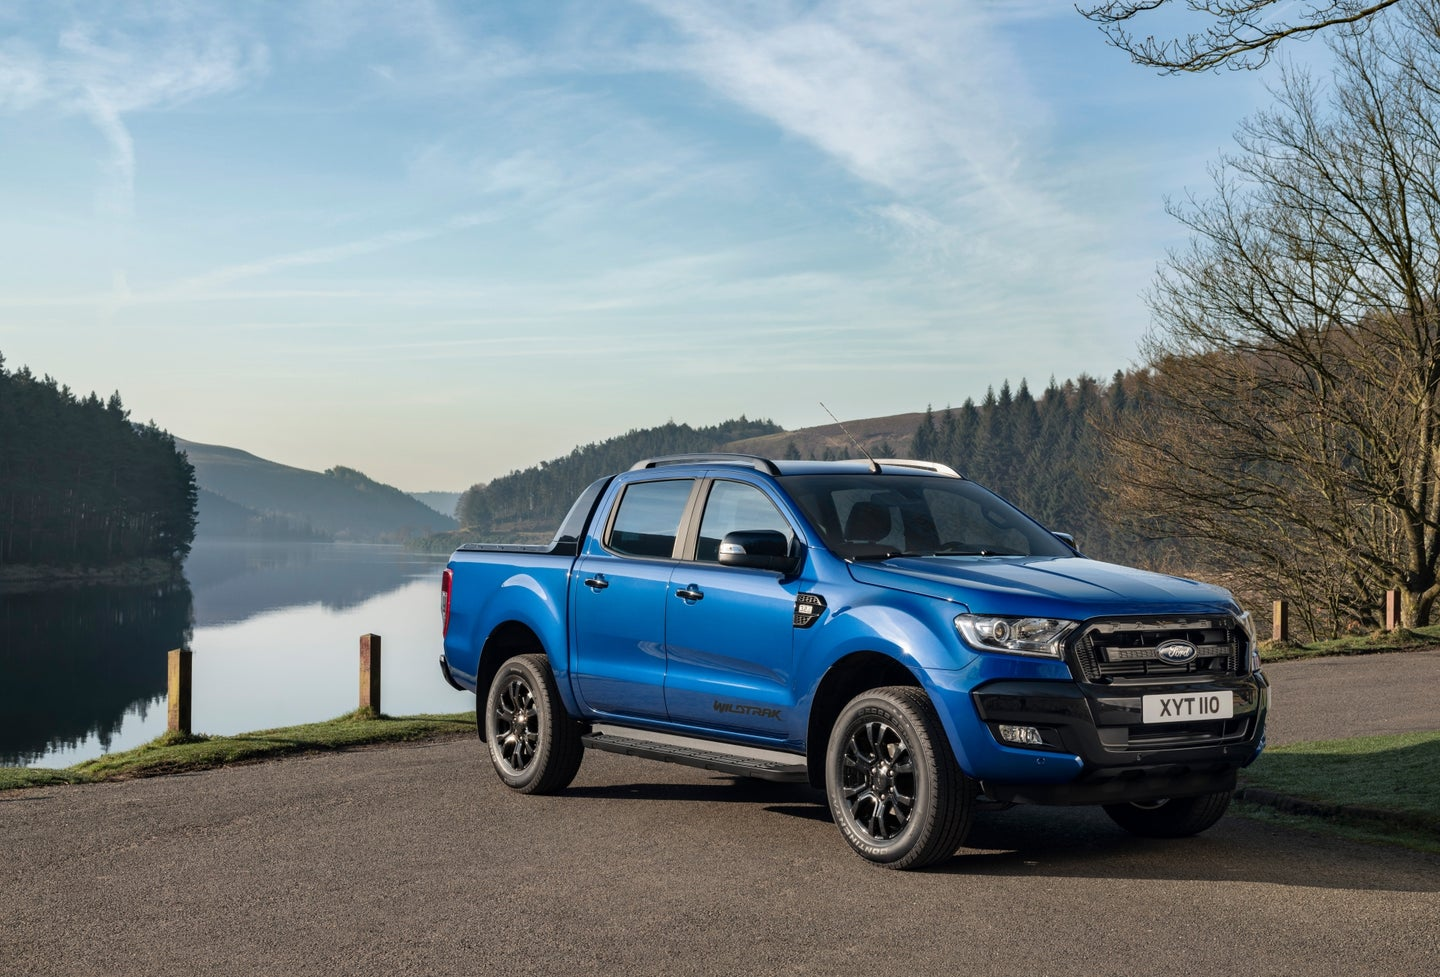 2018 Ford Ranger Wildtrak X - Front Side View